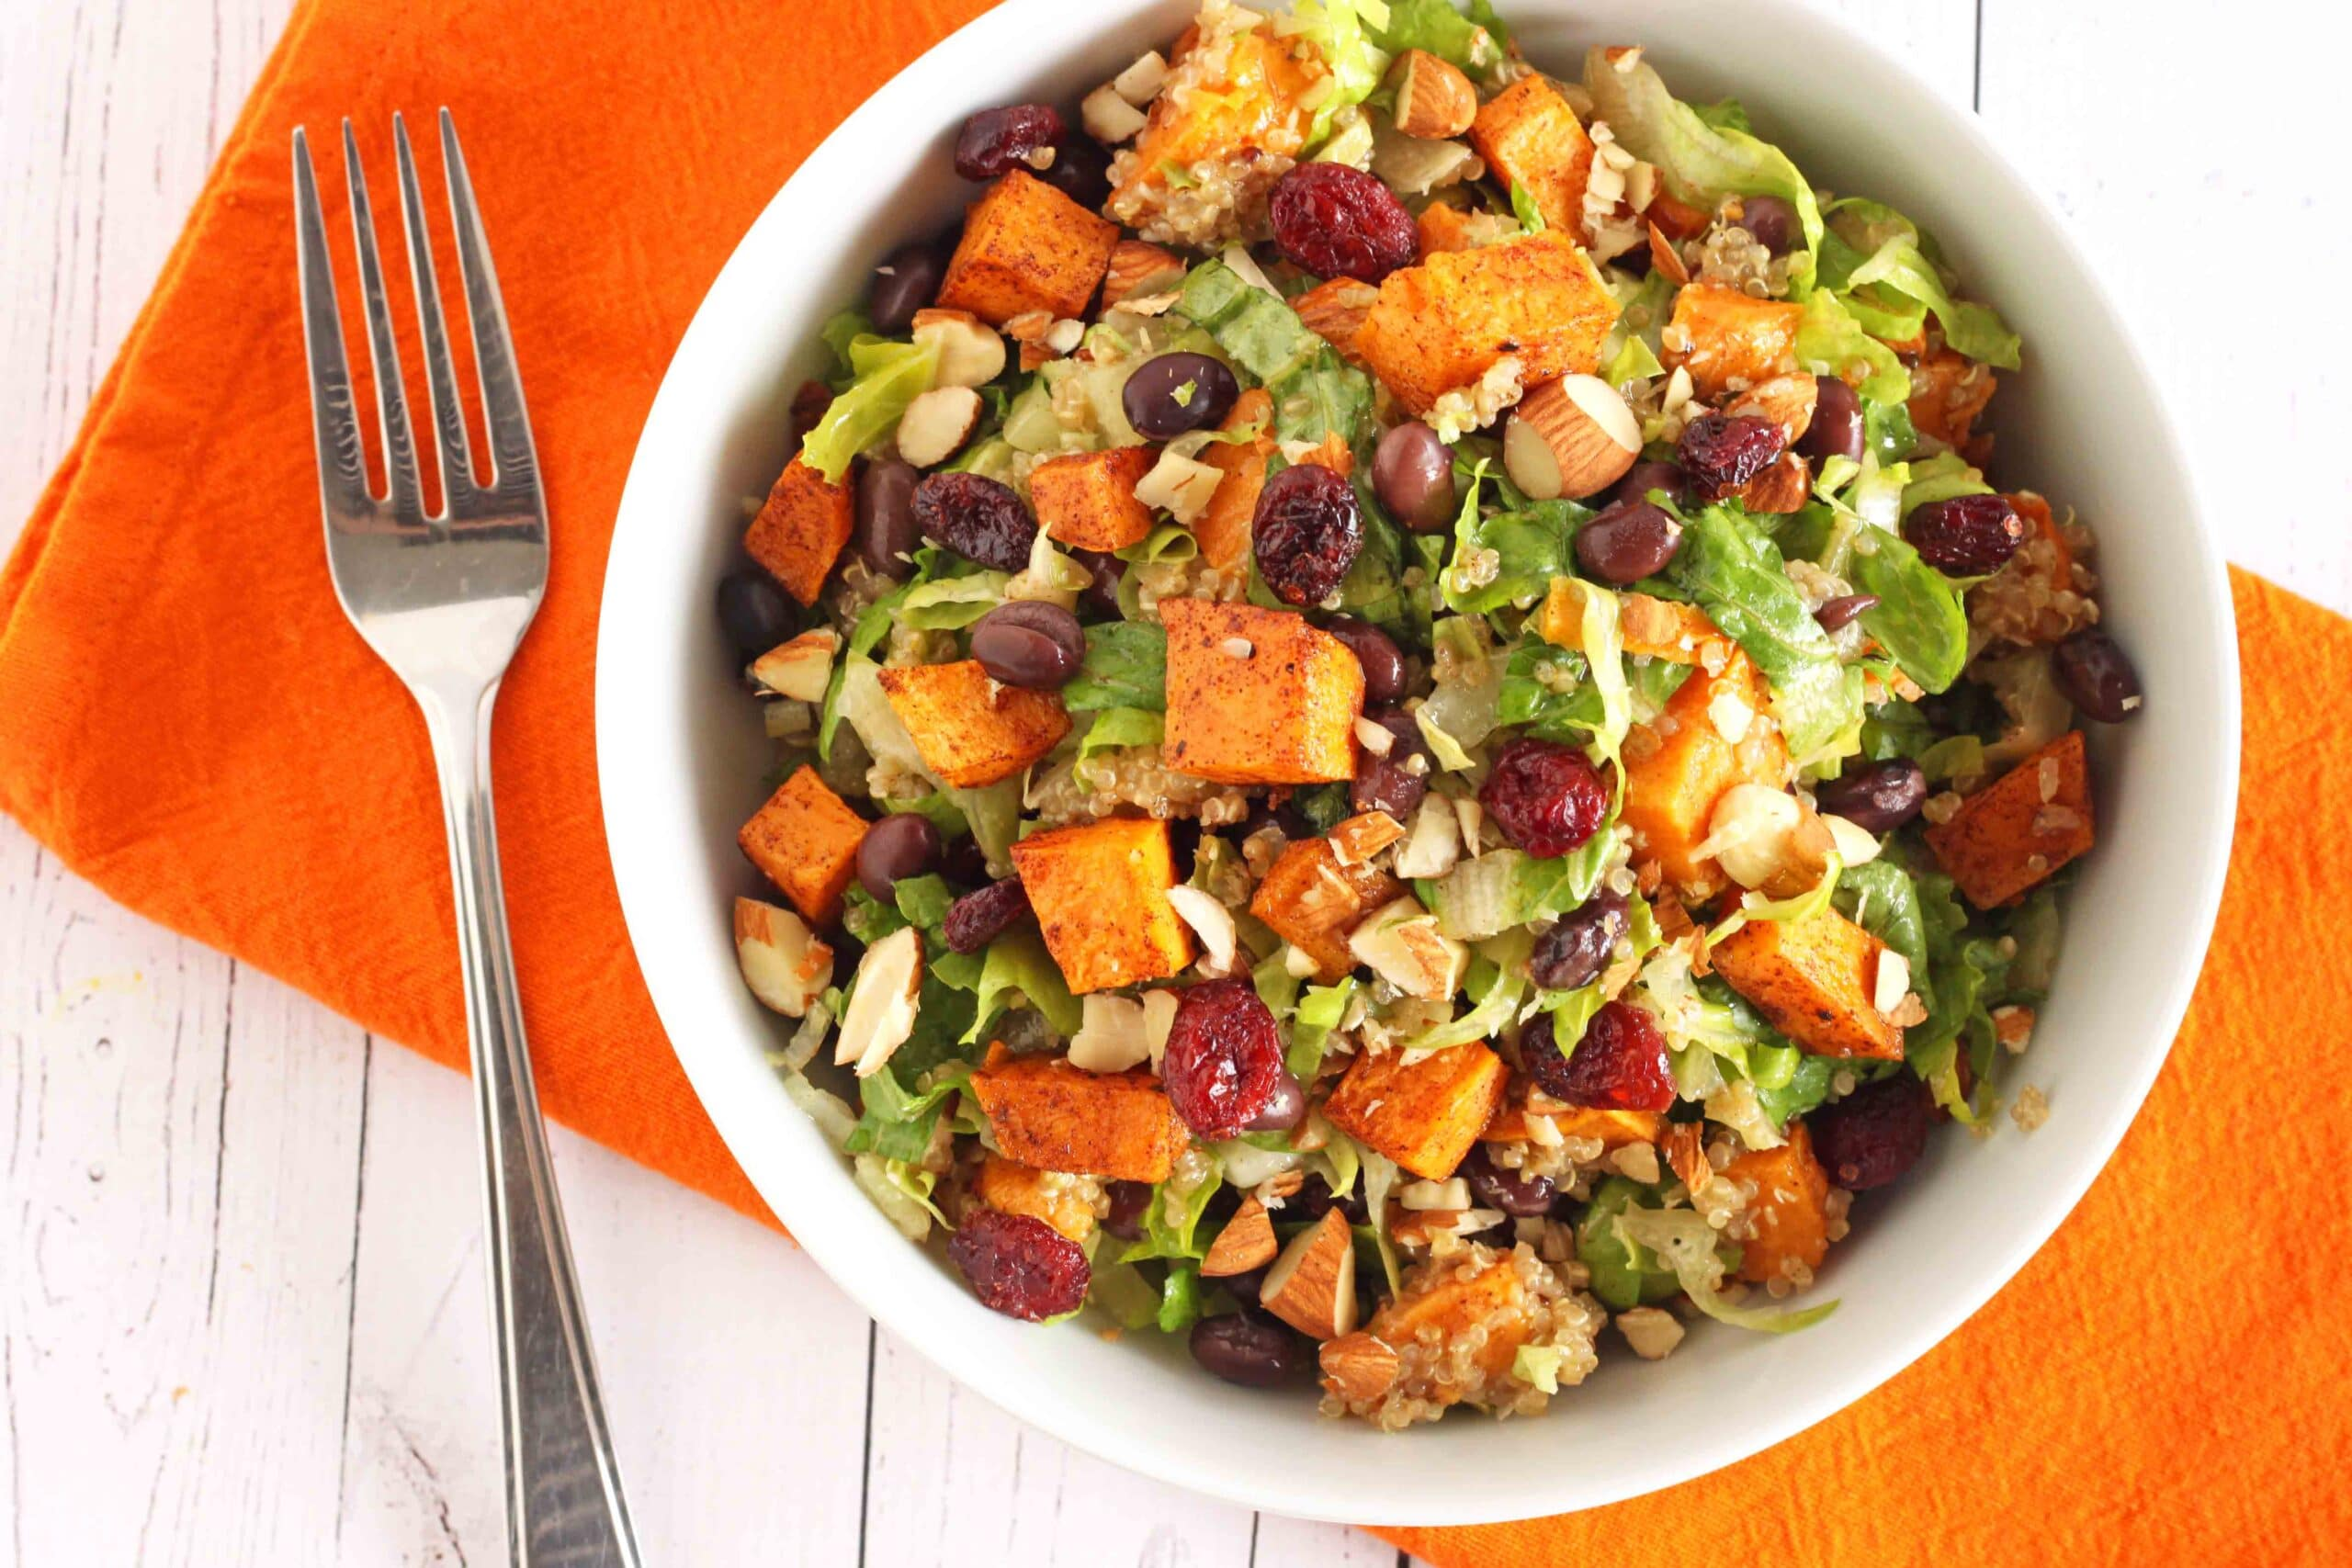 Hearty Vegan Fall Salad by Jesse Lane Wellness